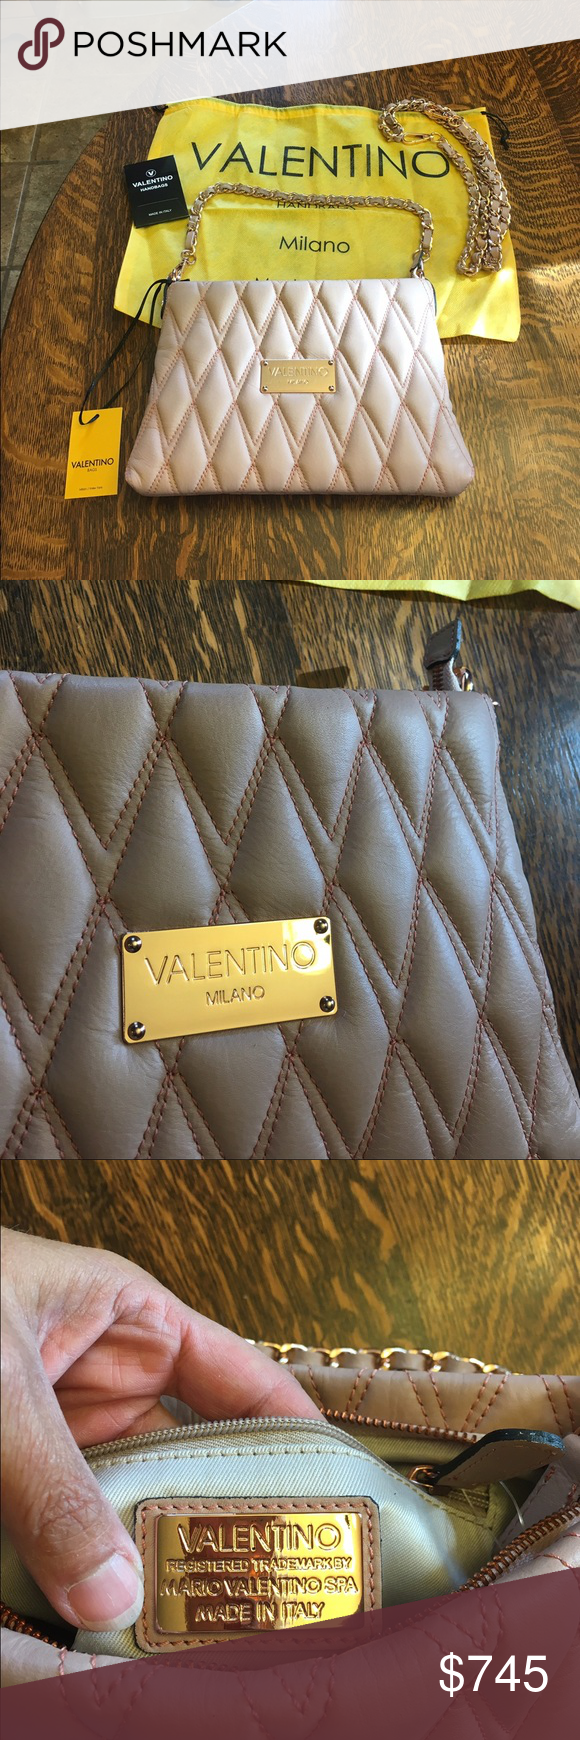 e0b4277997 Mario Valentino Spa Bag - Authentic Gorgeous quilted leather dusty pink bag  with rose gold accents